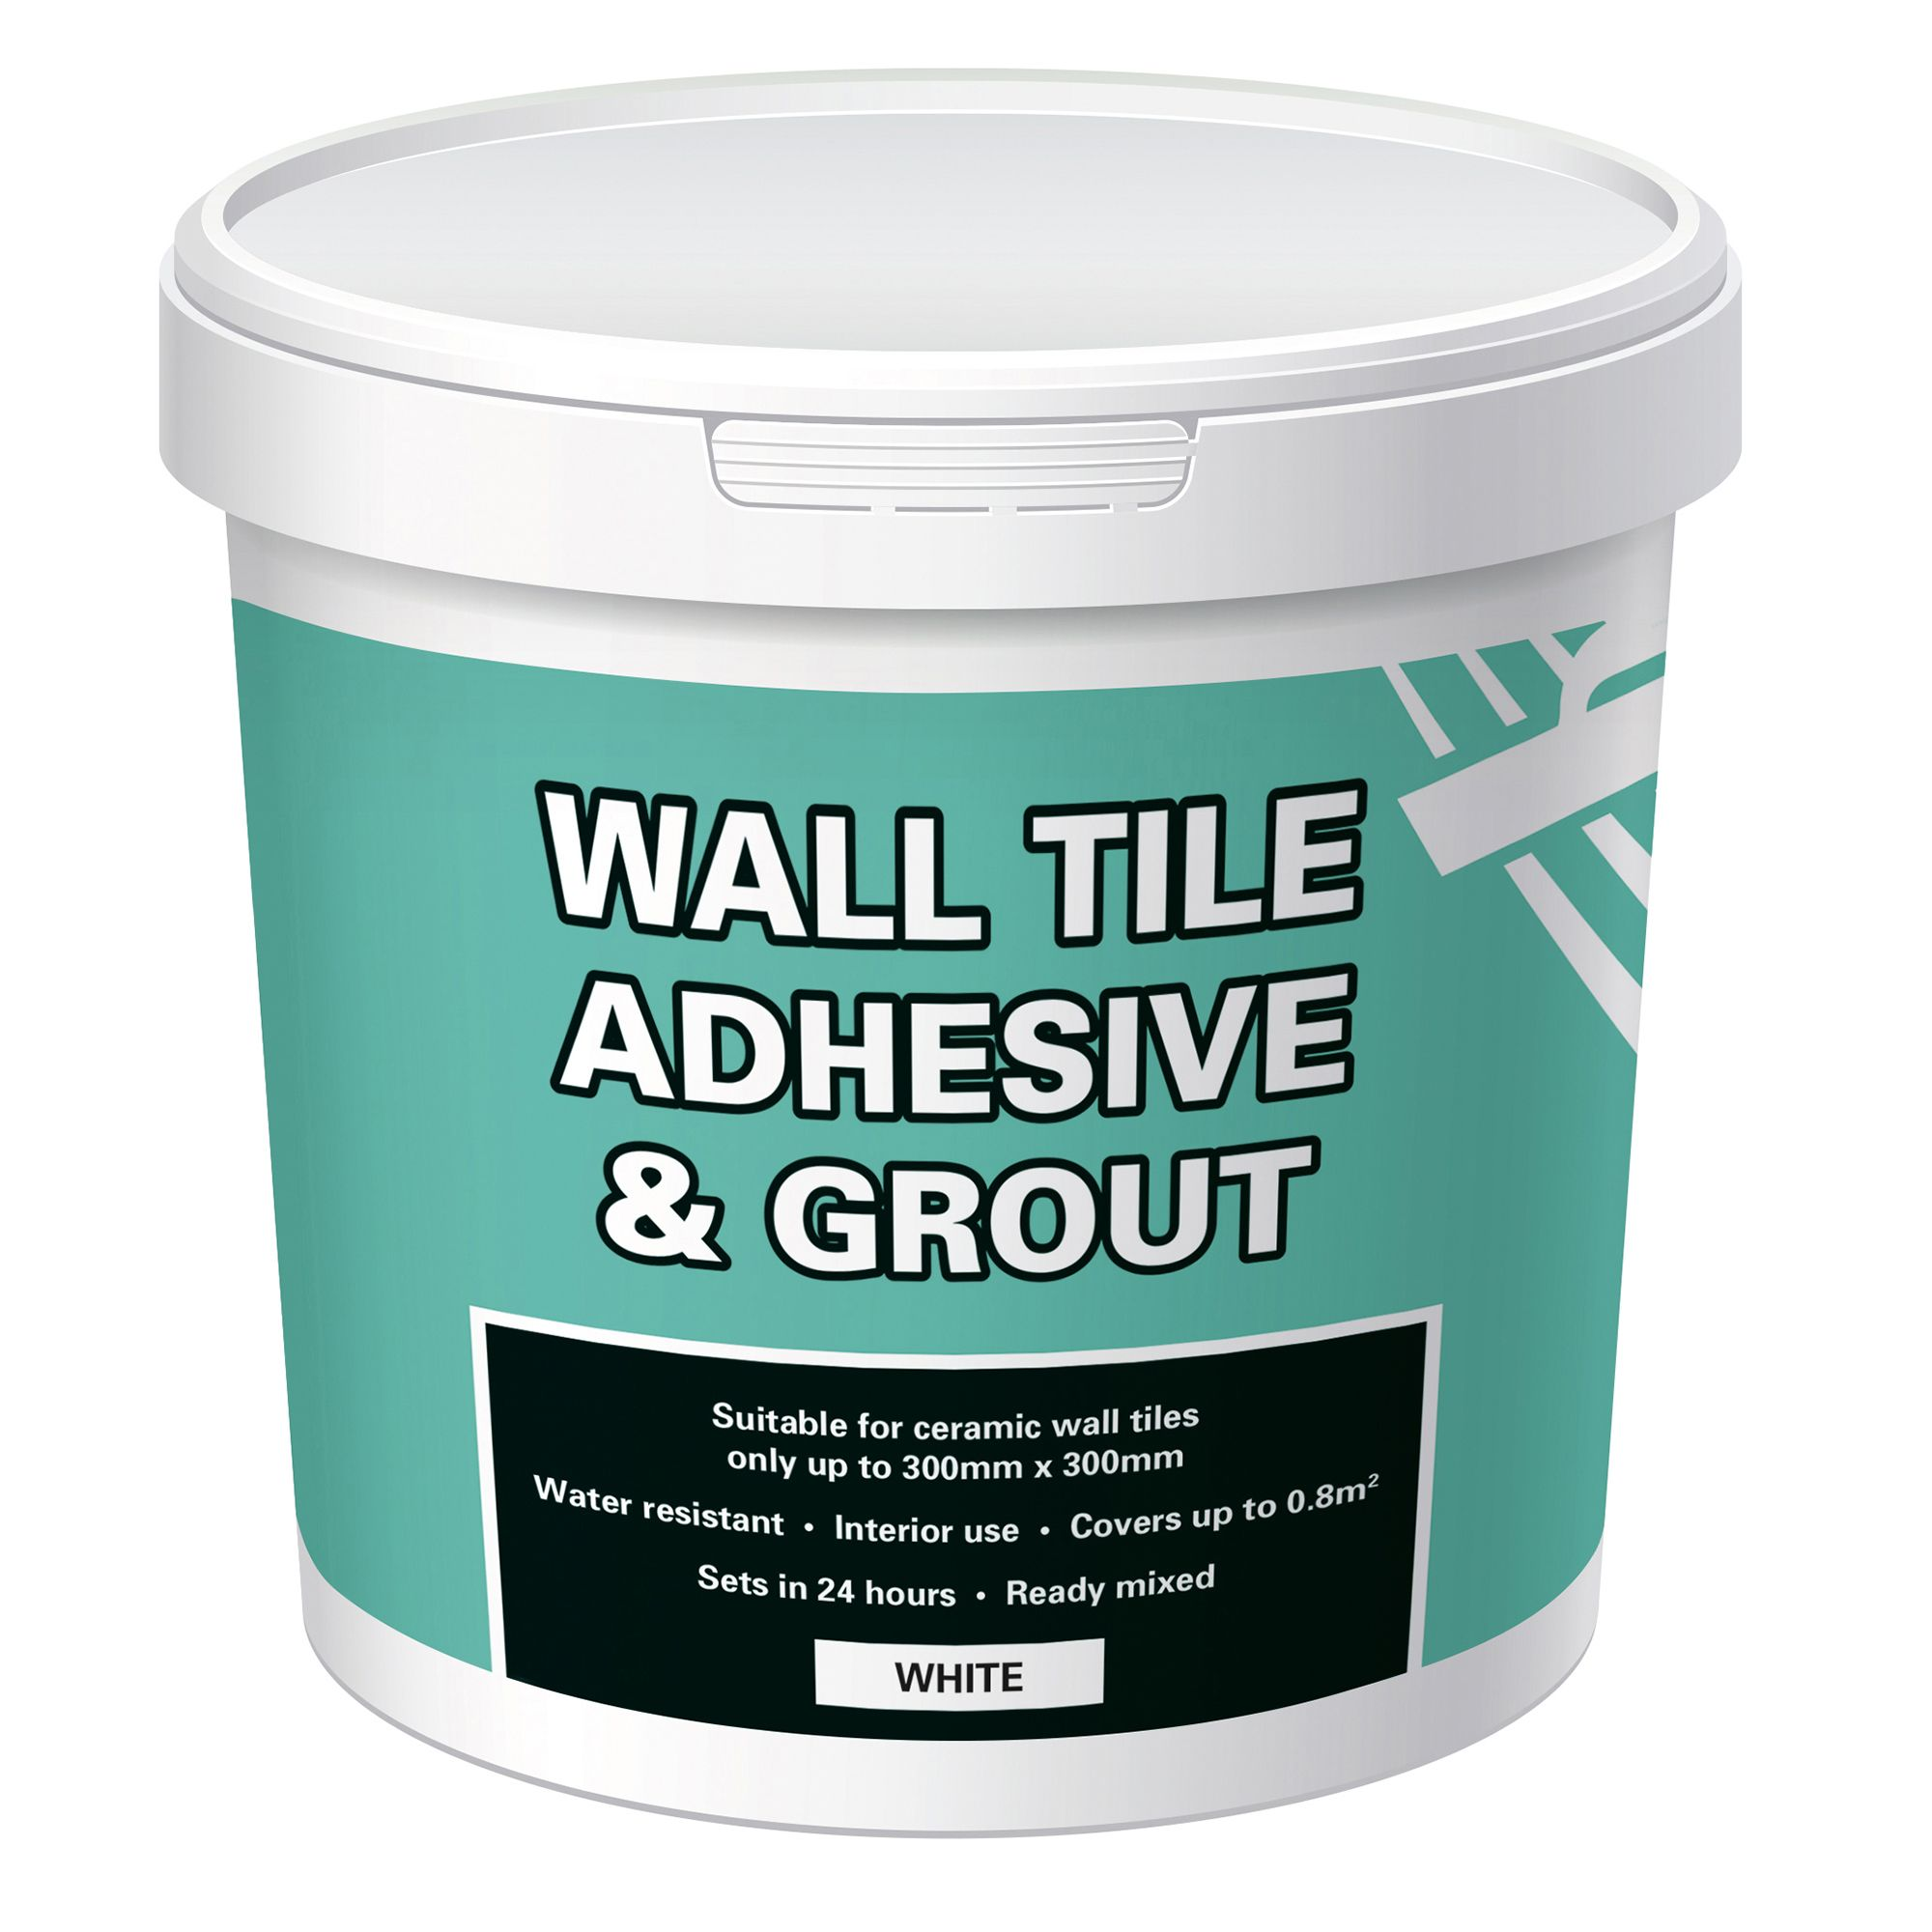 Ready mixed White Tile adhesive & grout, 1kg | Departments ...